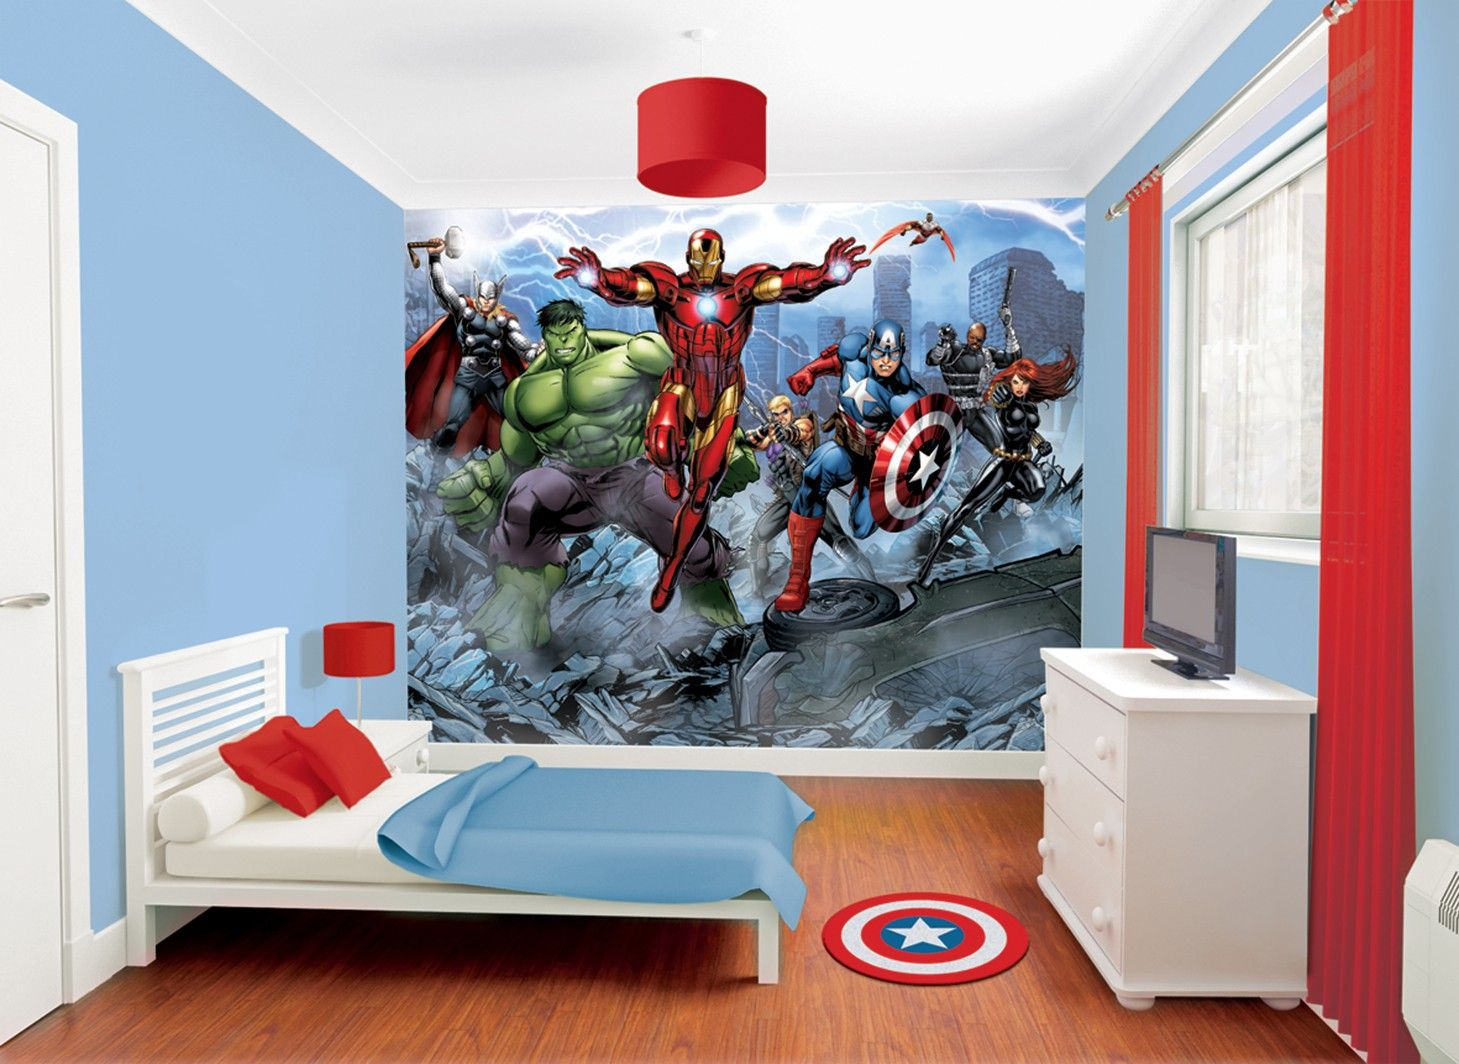 Marvel Themed Room Beauteous Marvel Avengers Wallpaper Murals.the Boys Need This For Their Decorating Design